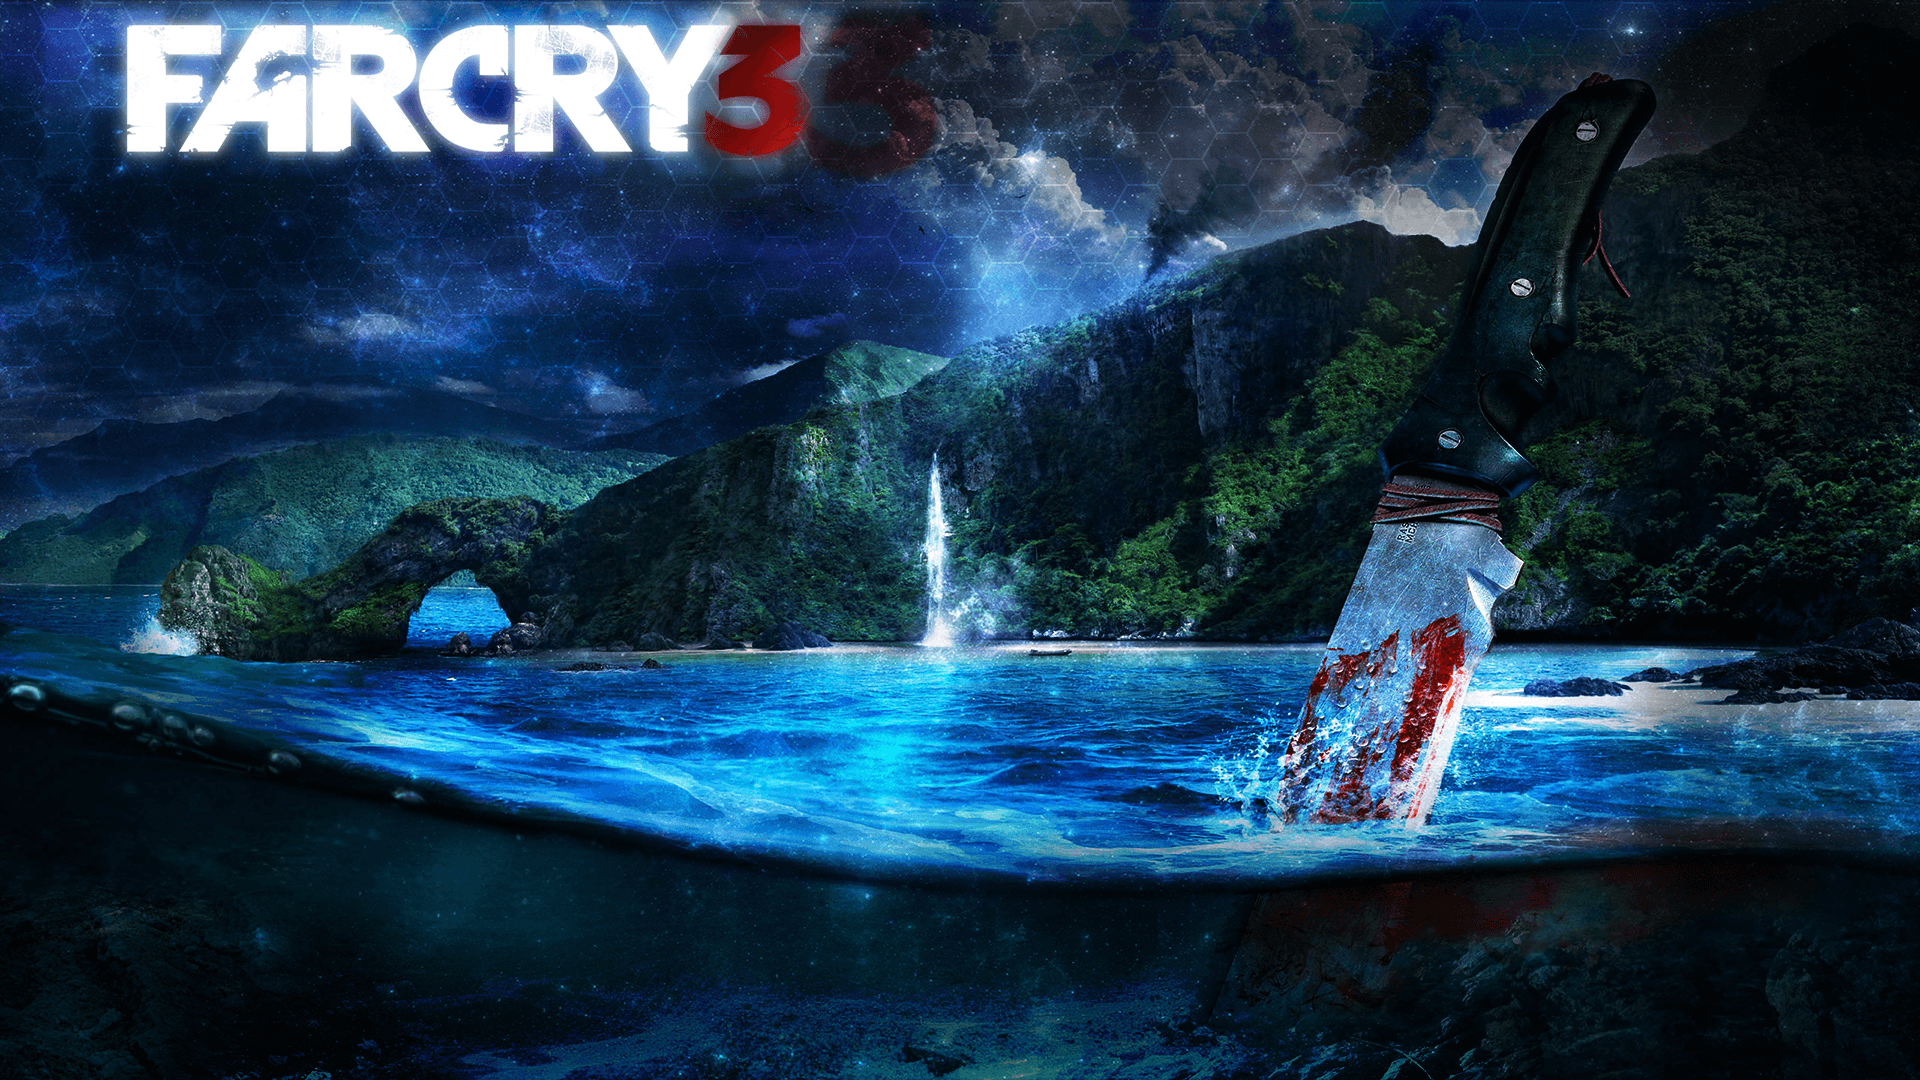 Far cry 3 wallpapers wallpaper cave for Wallpaper three